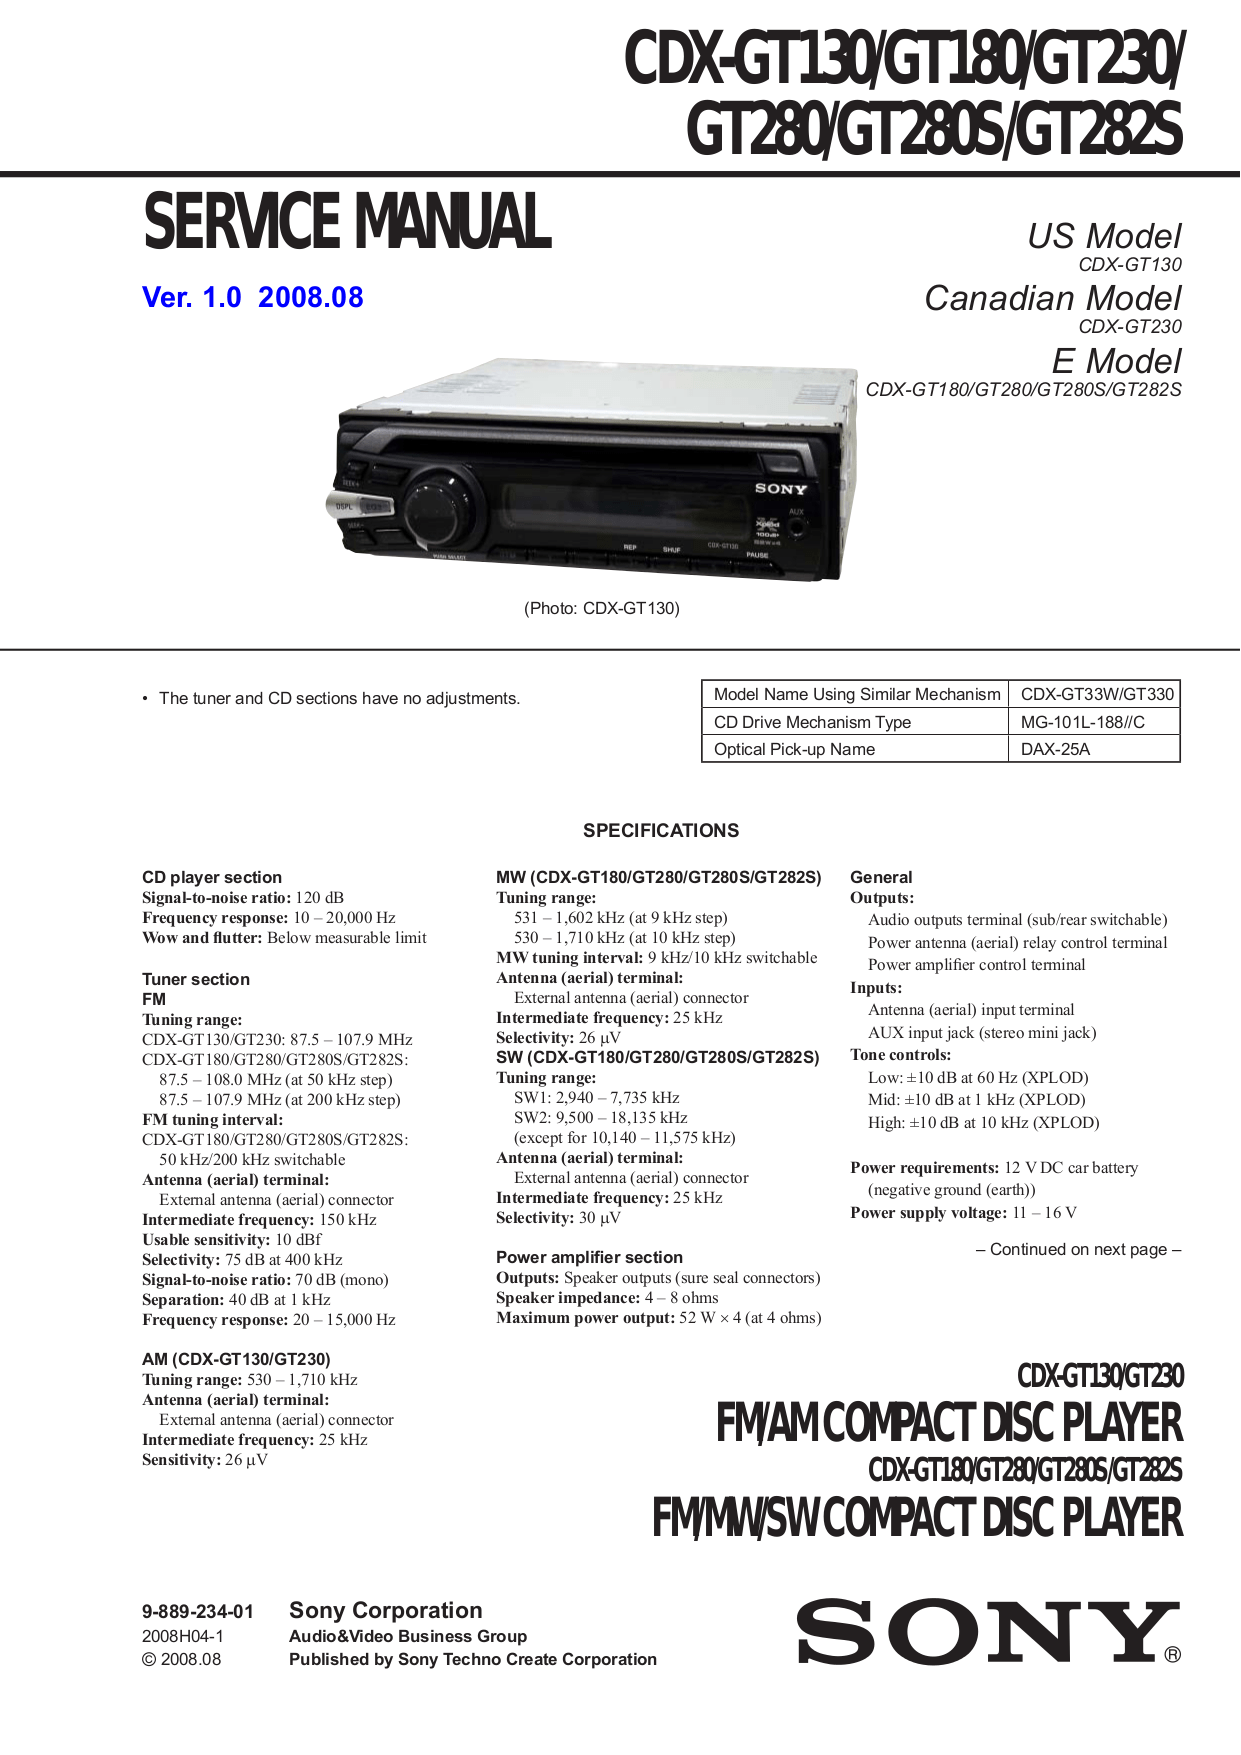 sony cd player wiring diagram bt 50 download free pdf for xplod cdx gt230 manual